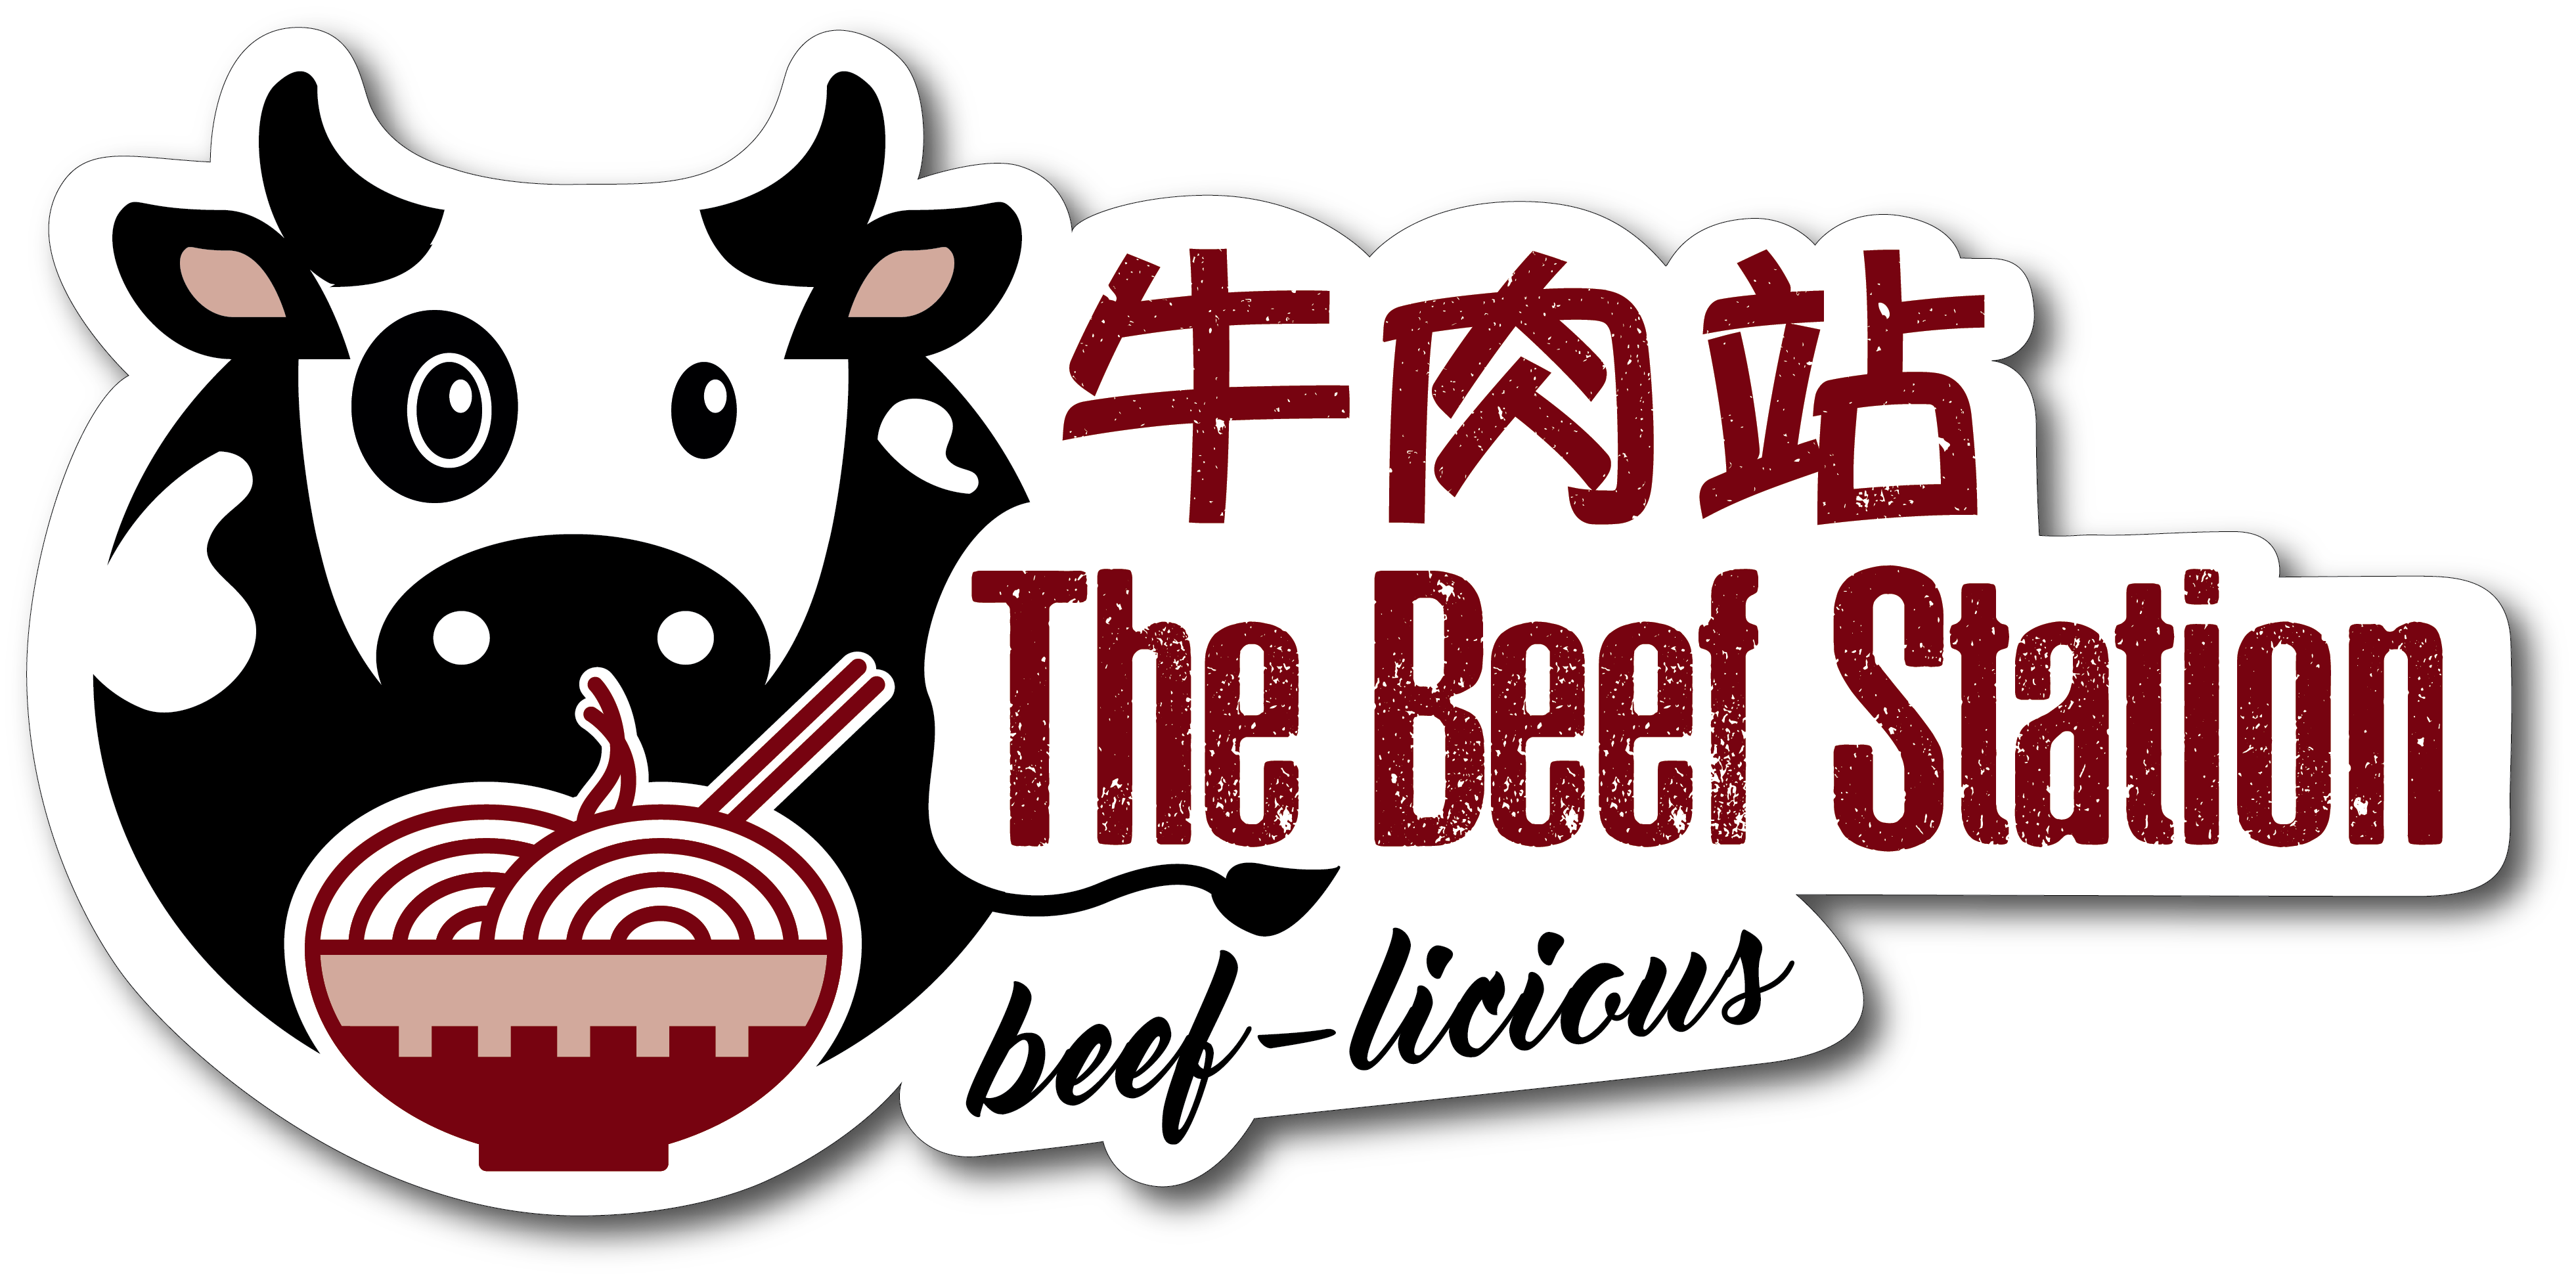 The Beef Station